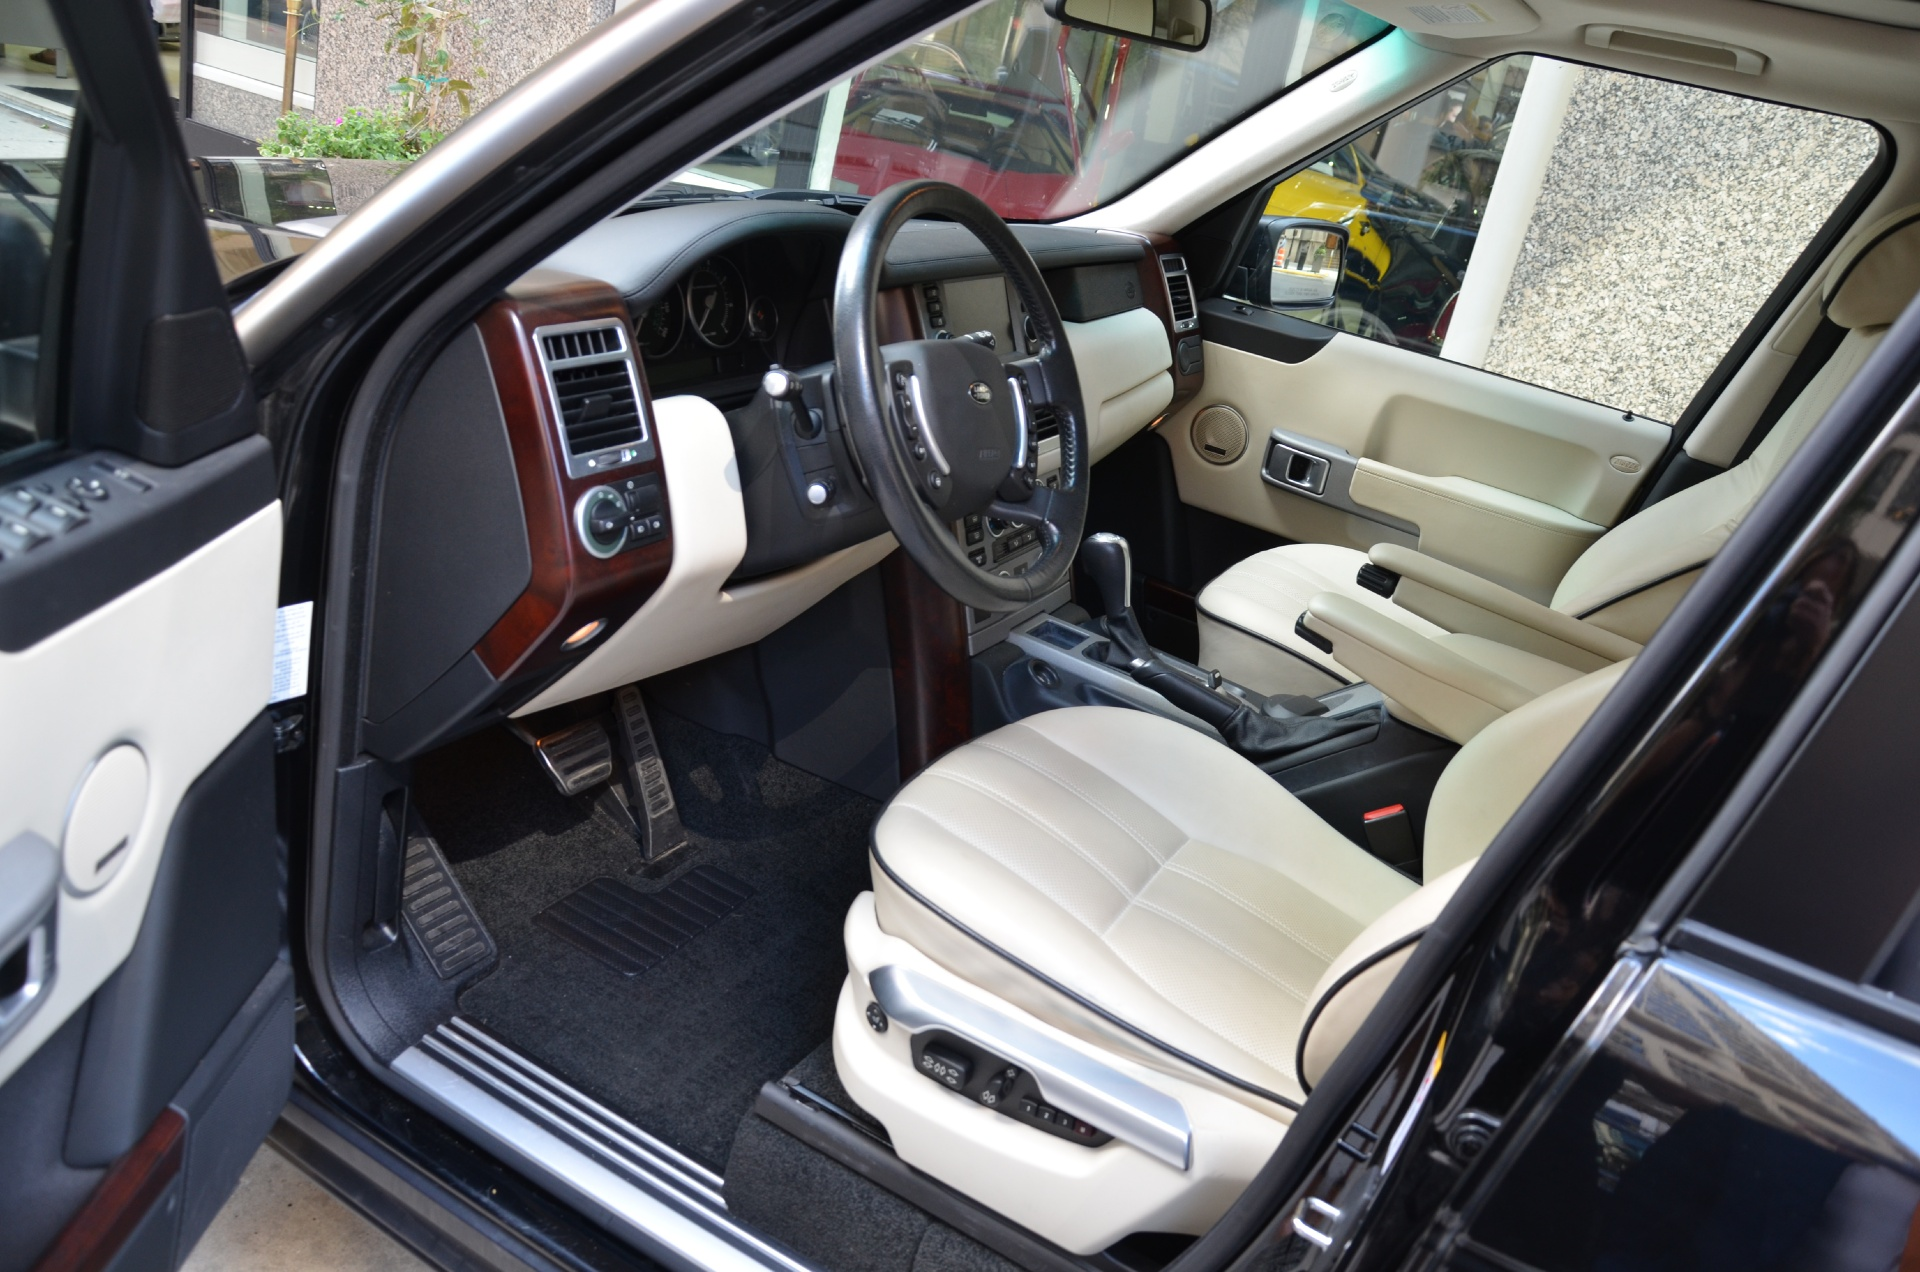 2006 Land Rover Range Rover Supercharged Stock GC1779B for sale